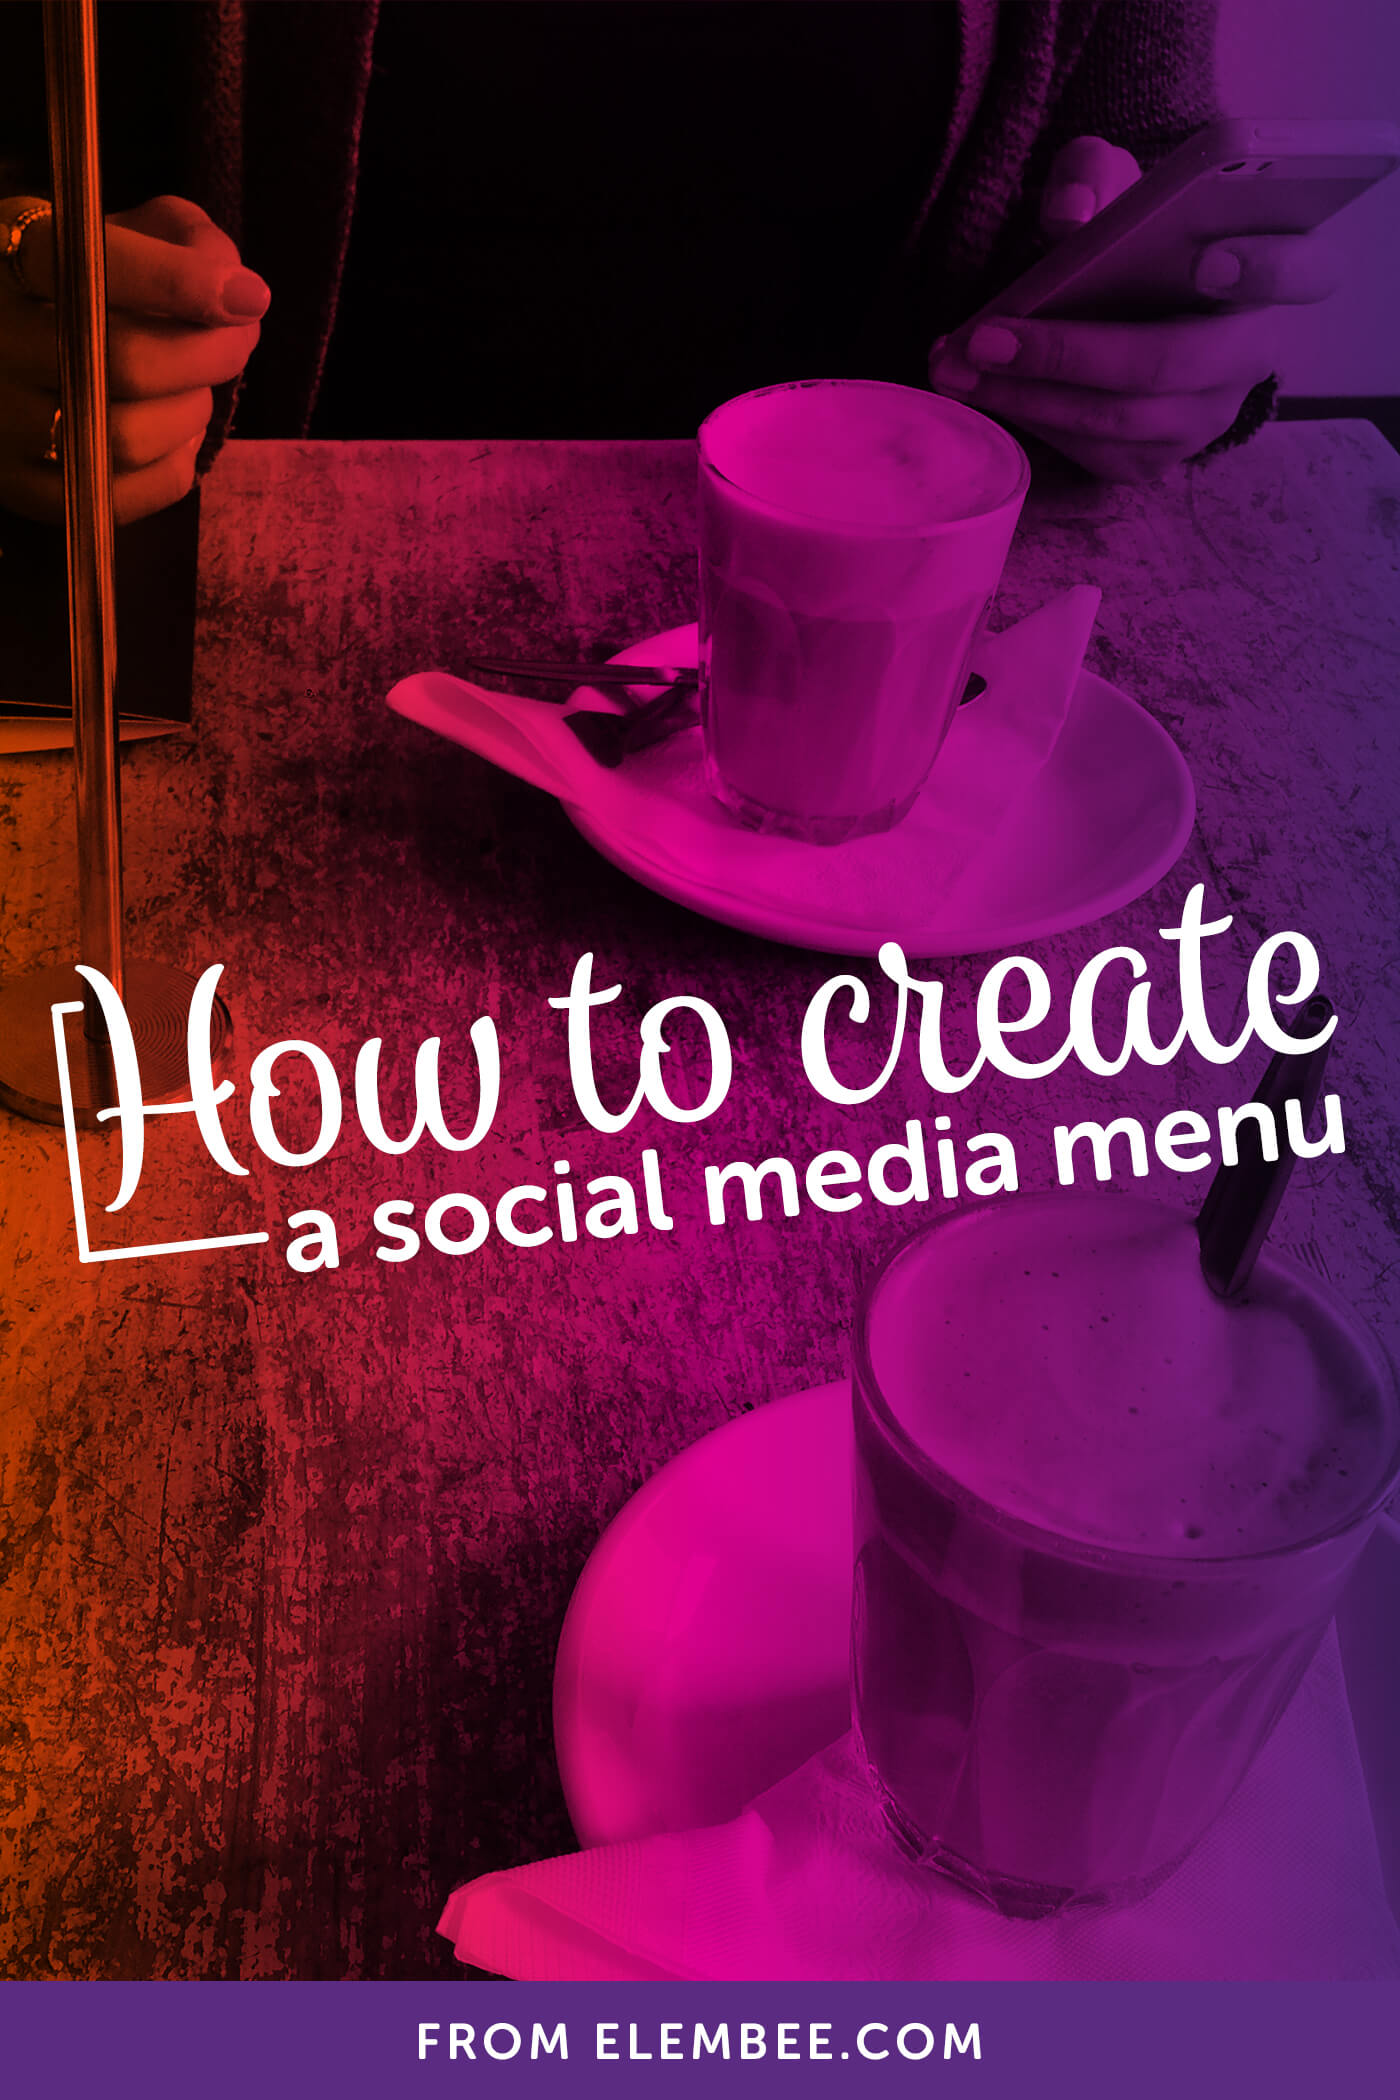 How to create a social media menu in WordPress with social media icons and links